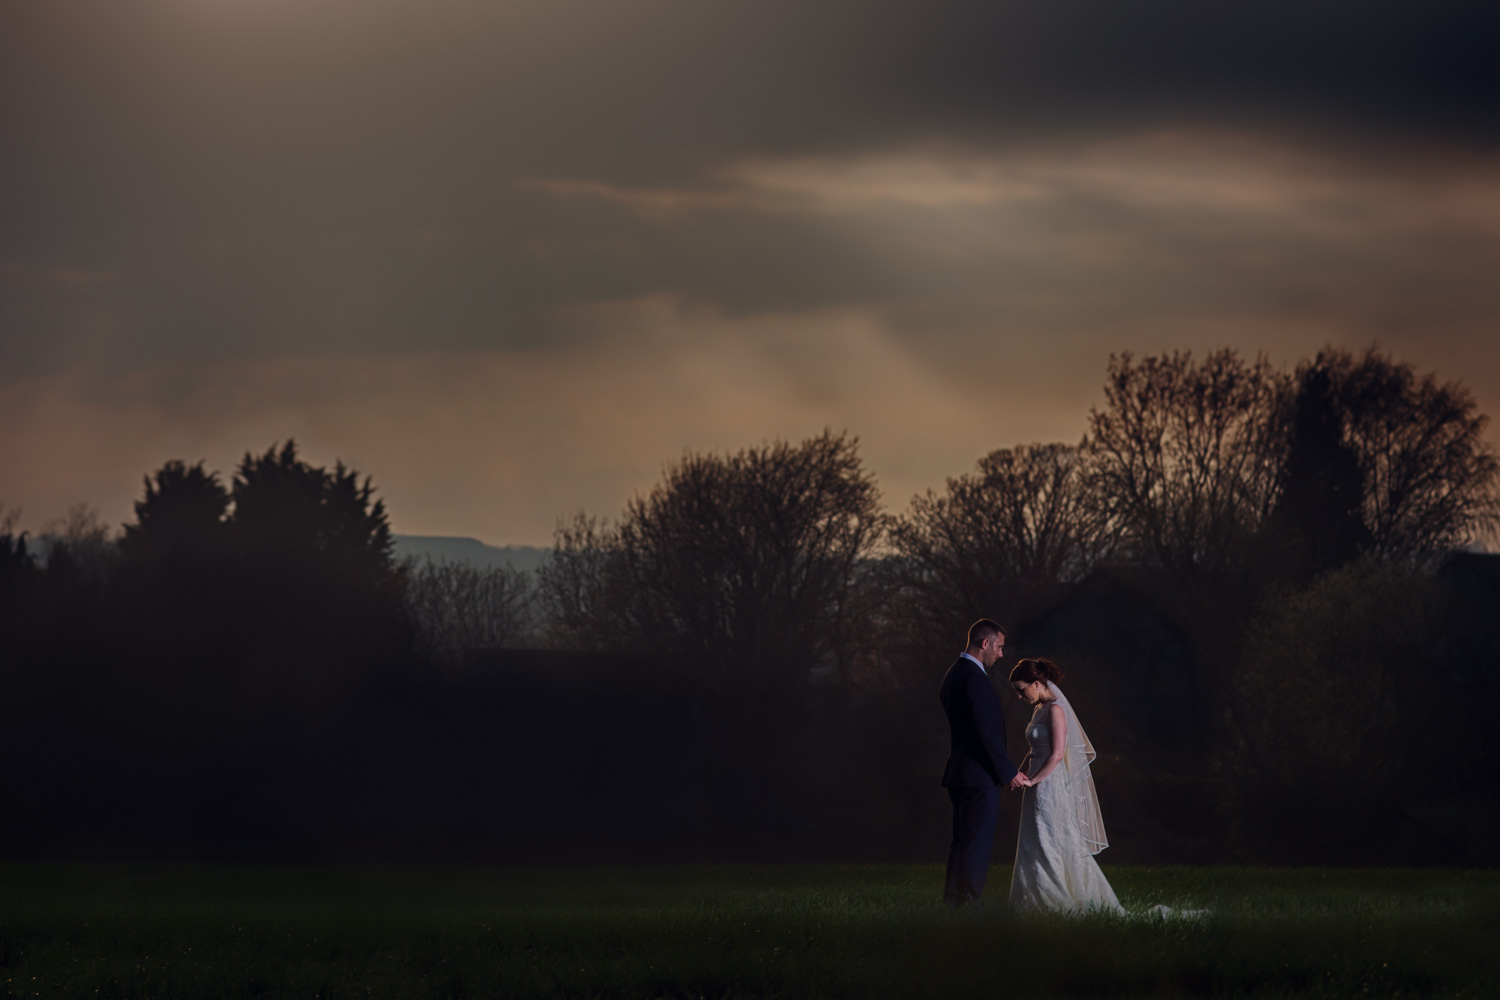 South-Wales-Wedding-Photographer-Mark-Barnes-Newport-The-old-barn-inn-Ginette-and-Lewis-blog-62.jpg